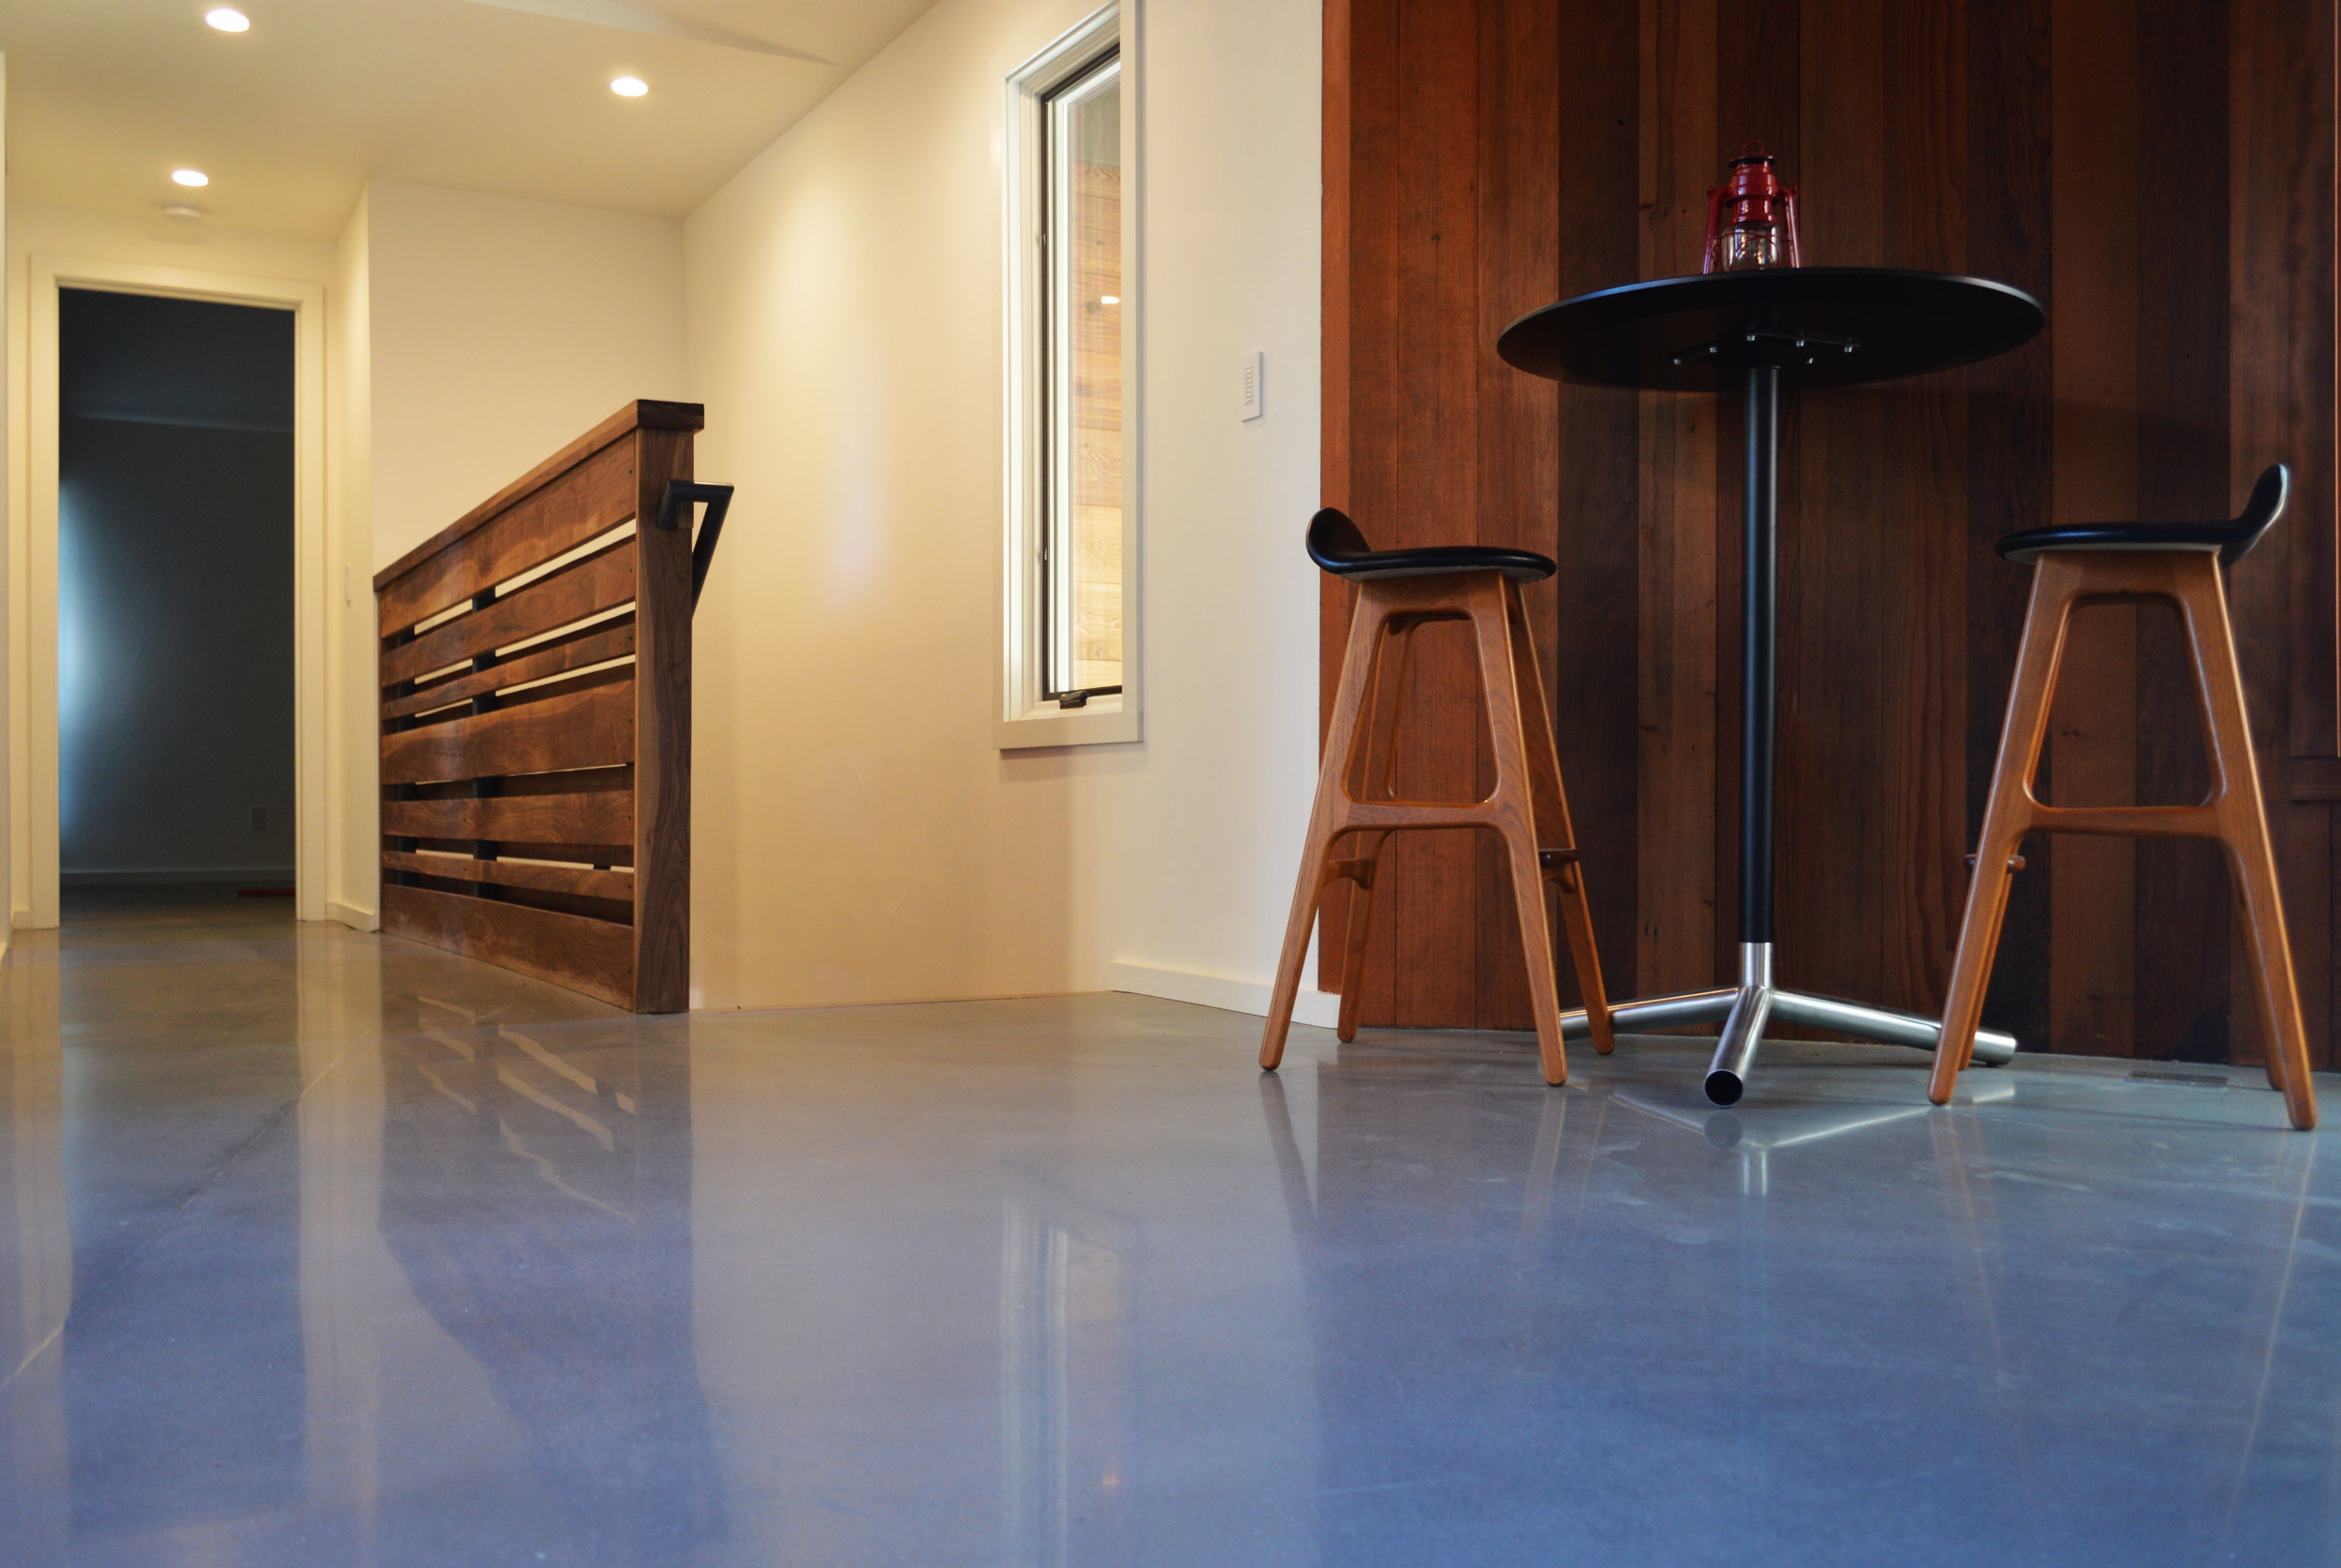 Tru Overlay flooring in a bright and open residential hallway